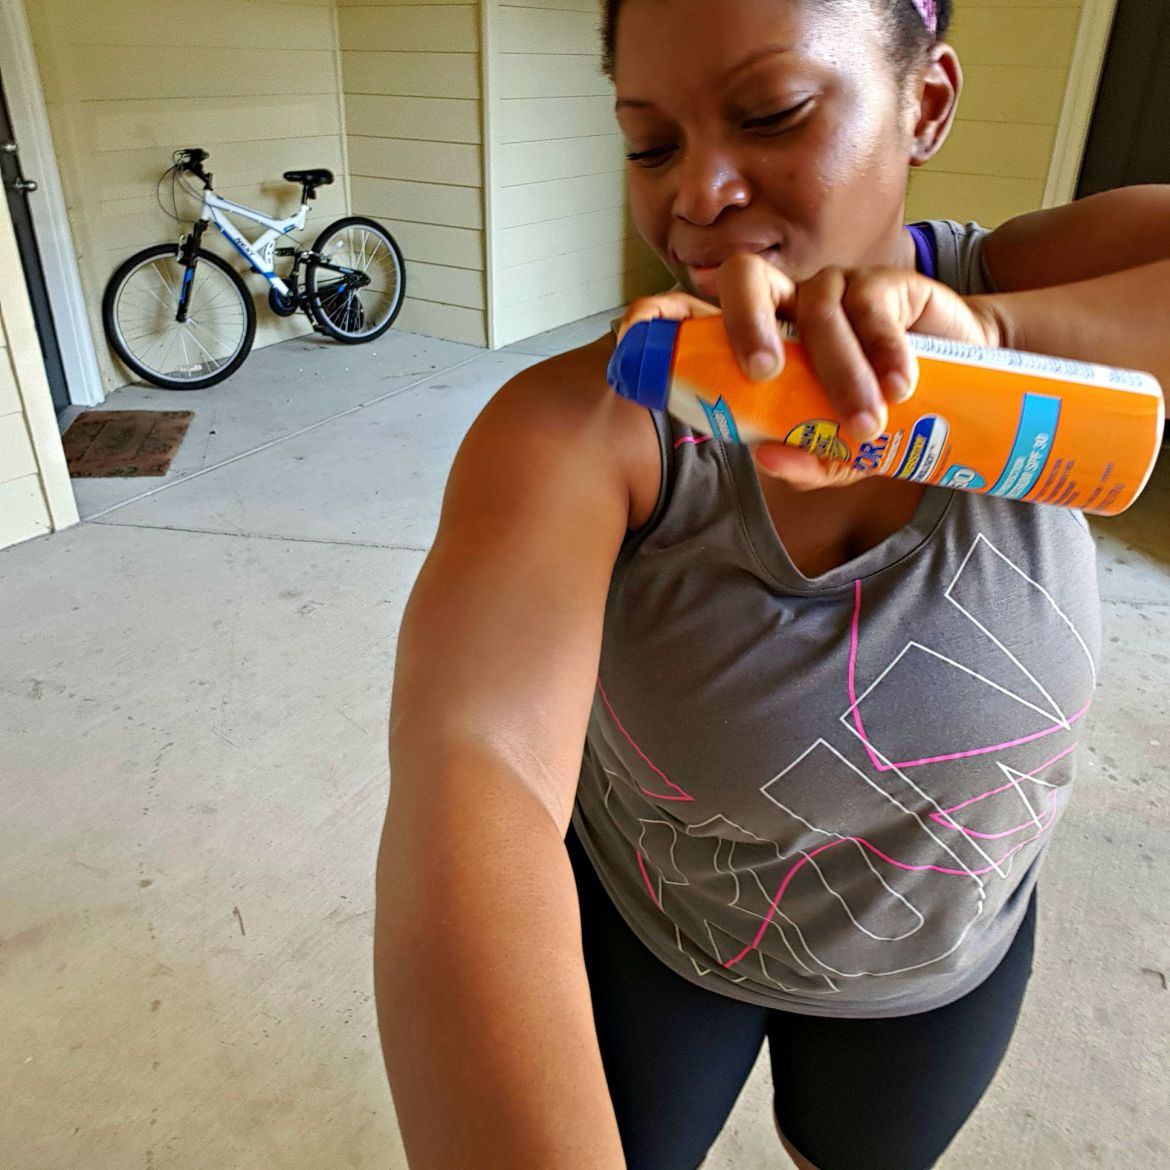 6 Fitness Tips For Stress Free Training9 Sunscreen